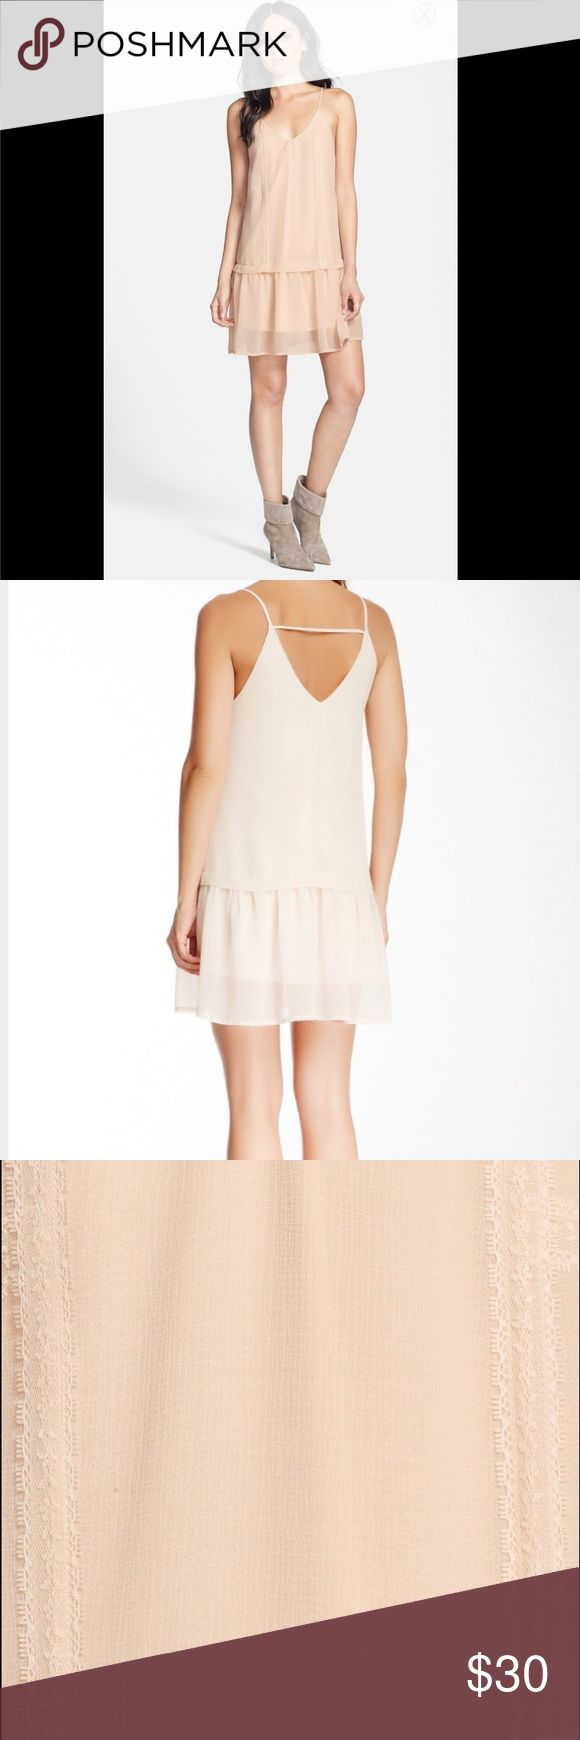 ASTR DRESS New without tags! Sheer light material... Comes with attached under slip .. Beautiful light plush cream color ASTR Dresses Midi